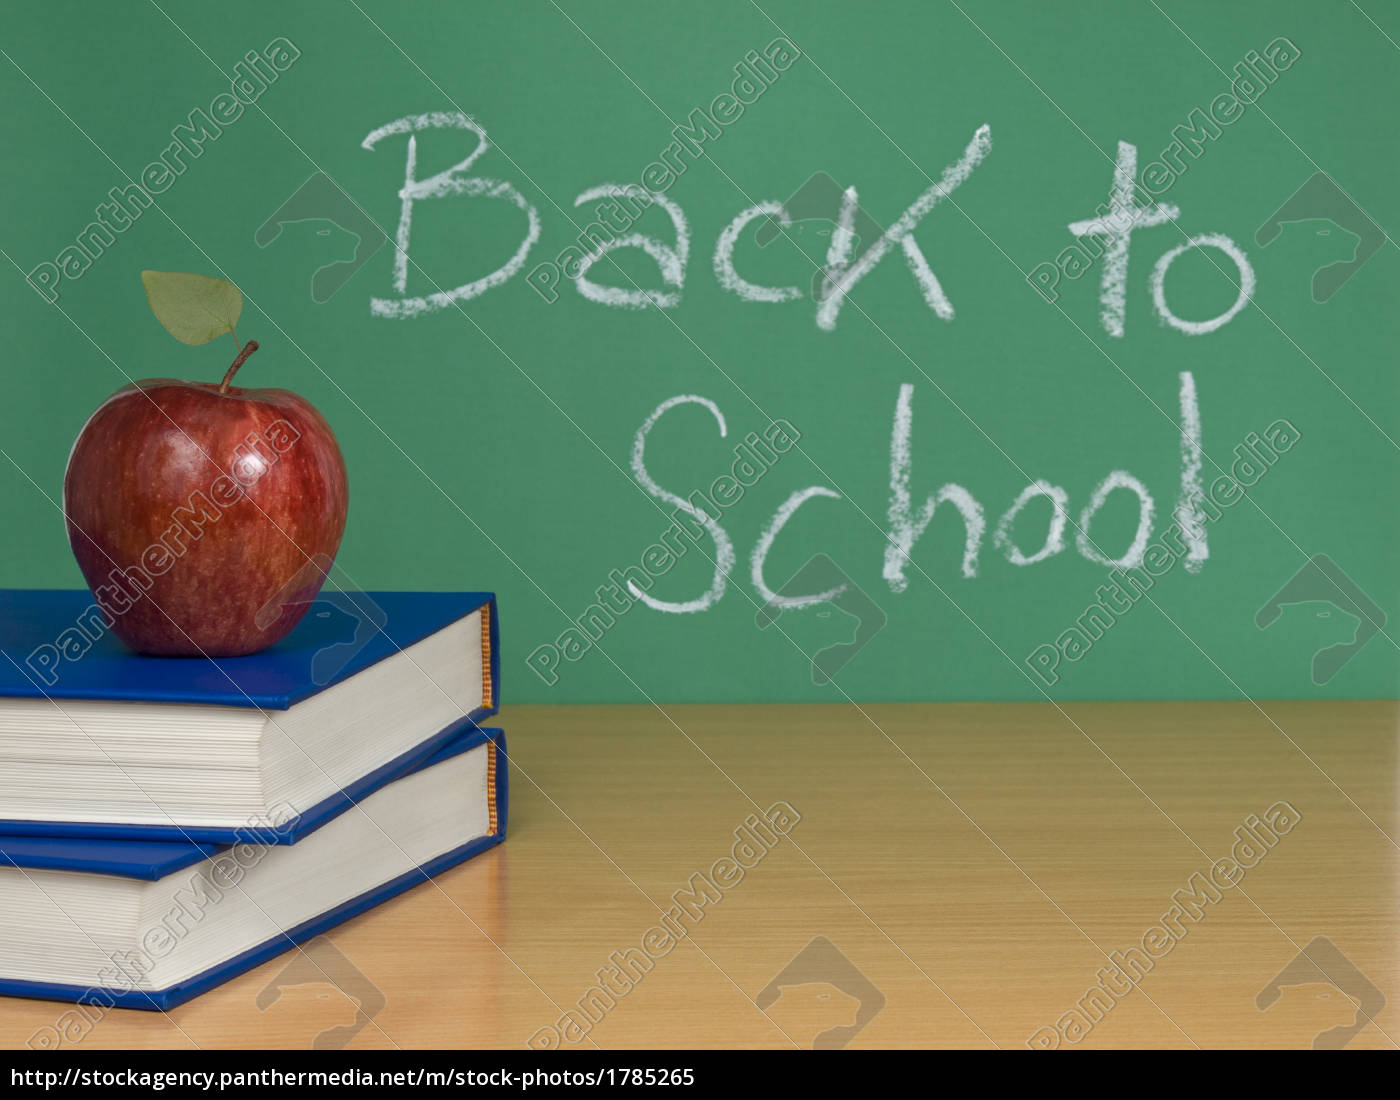 back, to, school - 1785265